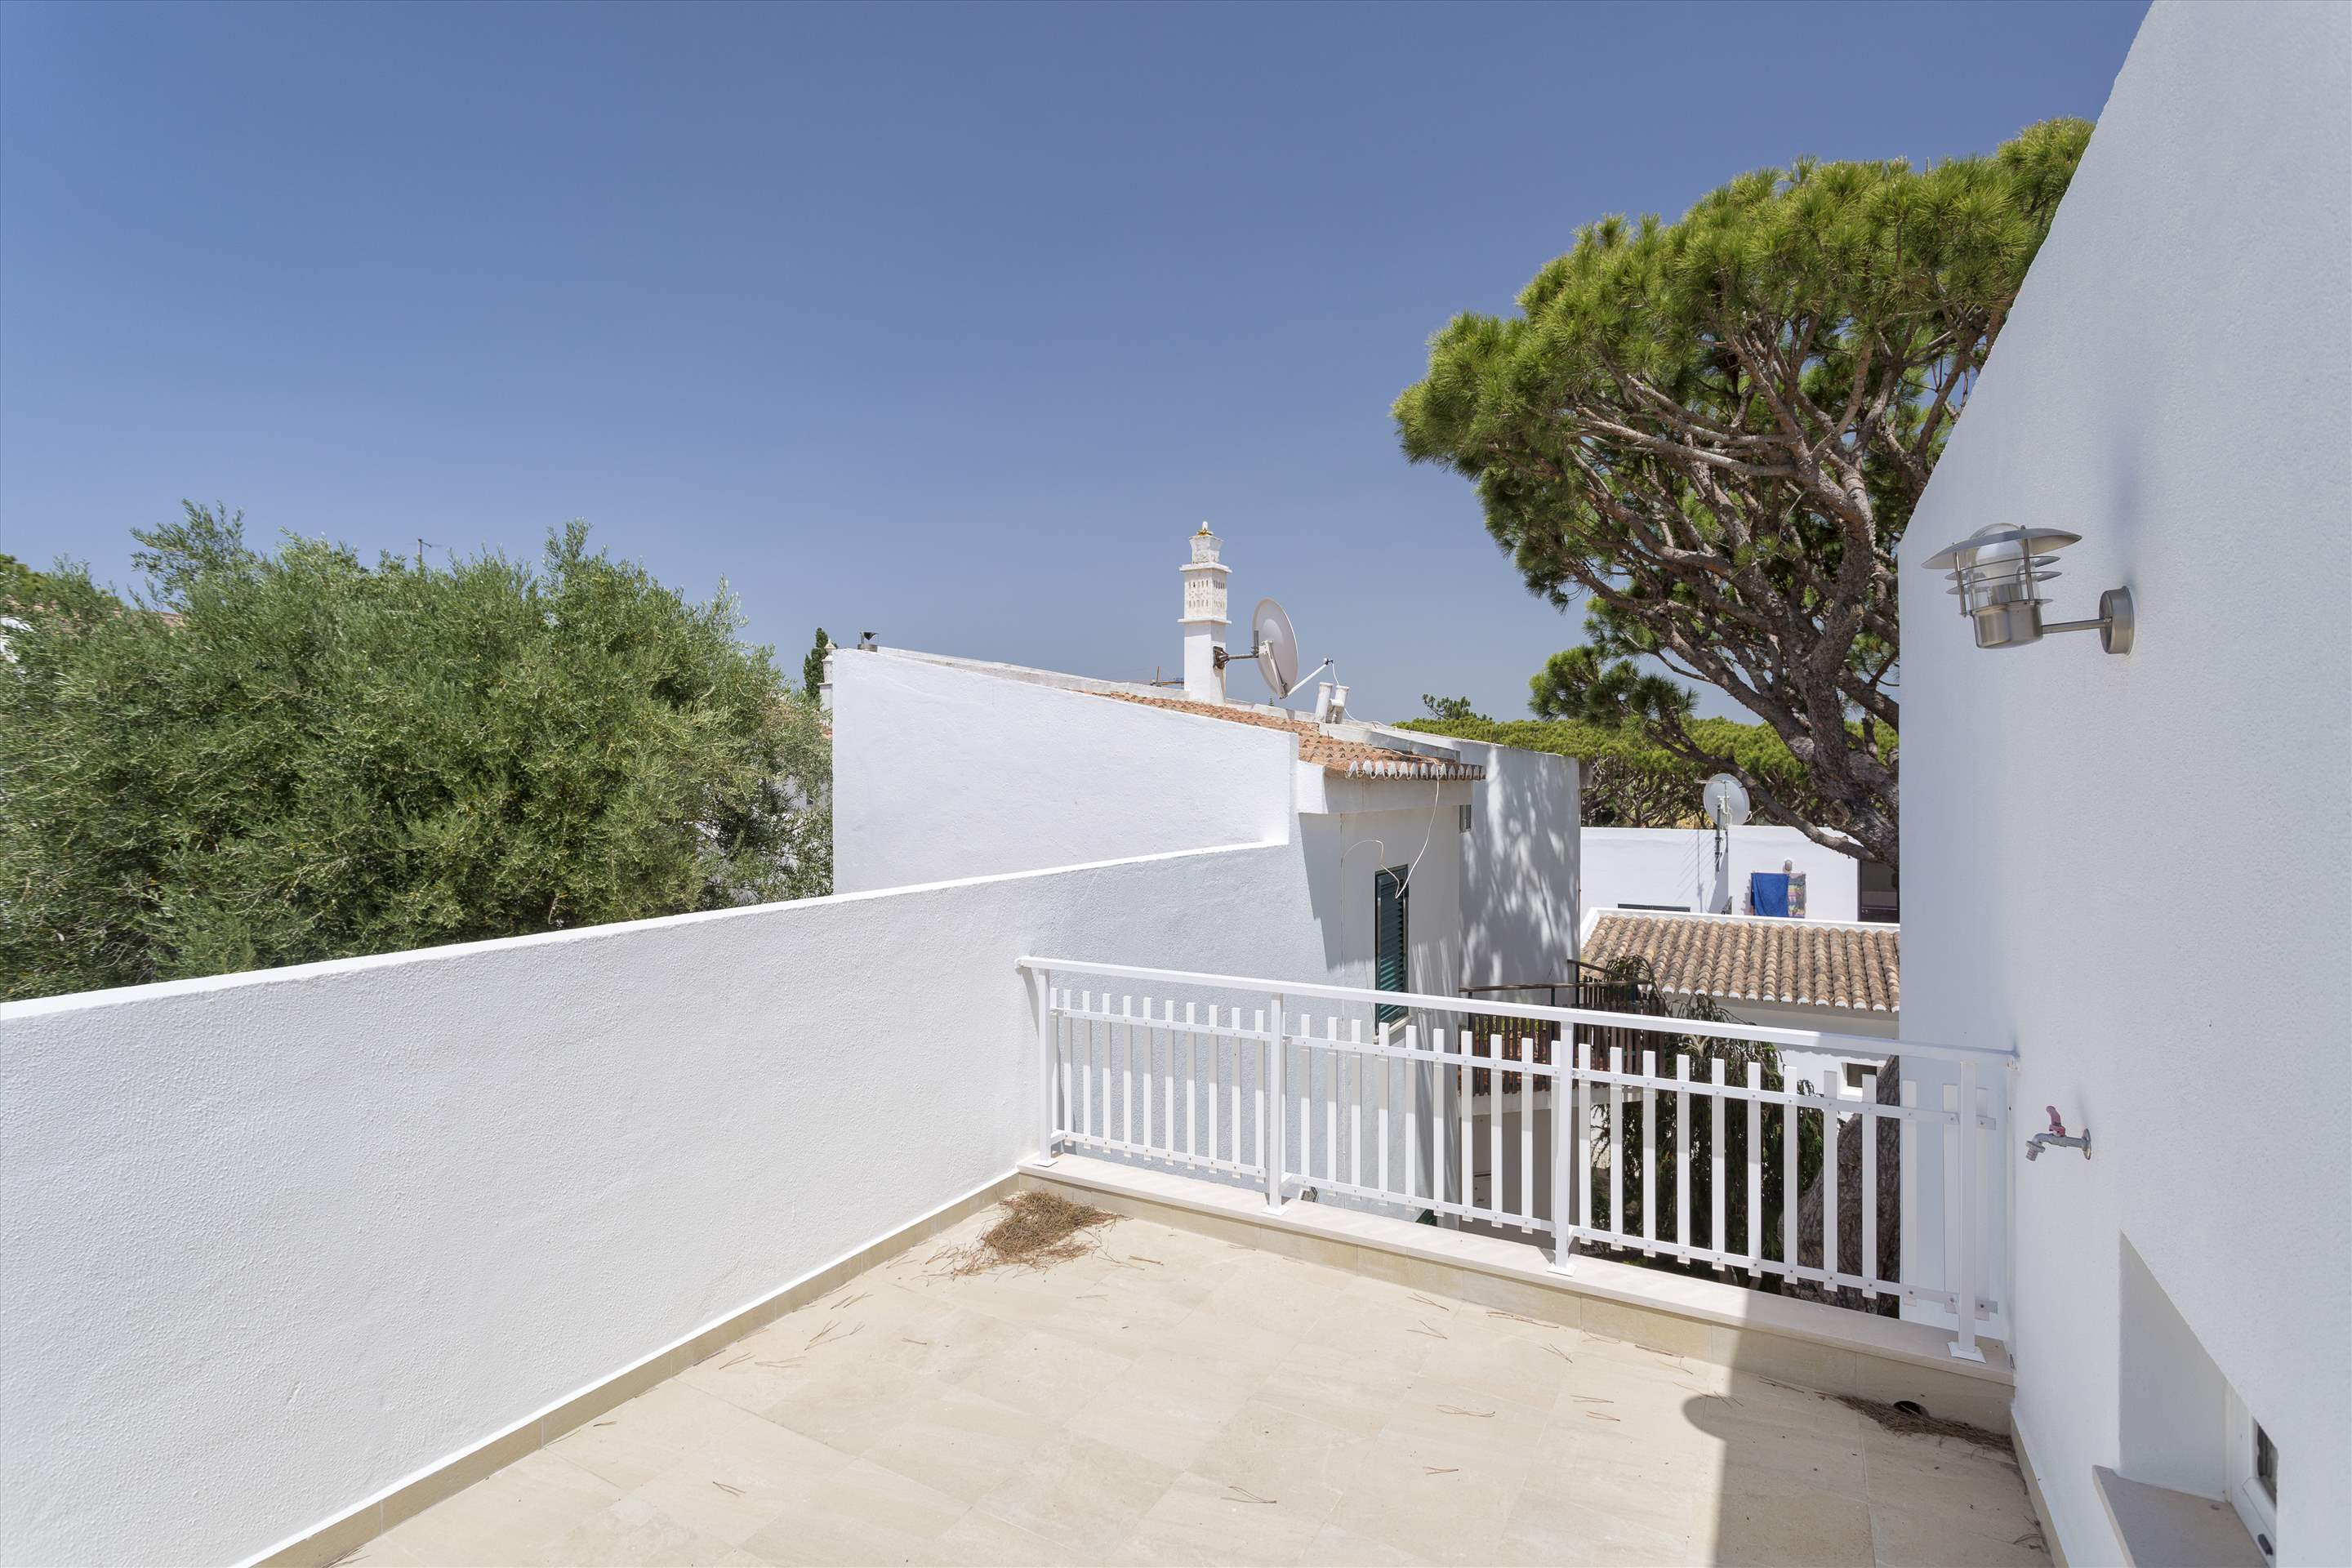 Villa Clemente, 2 bedroom villa in Vale do Lobo, Algarve Photo #14